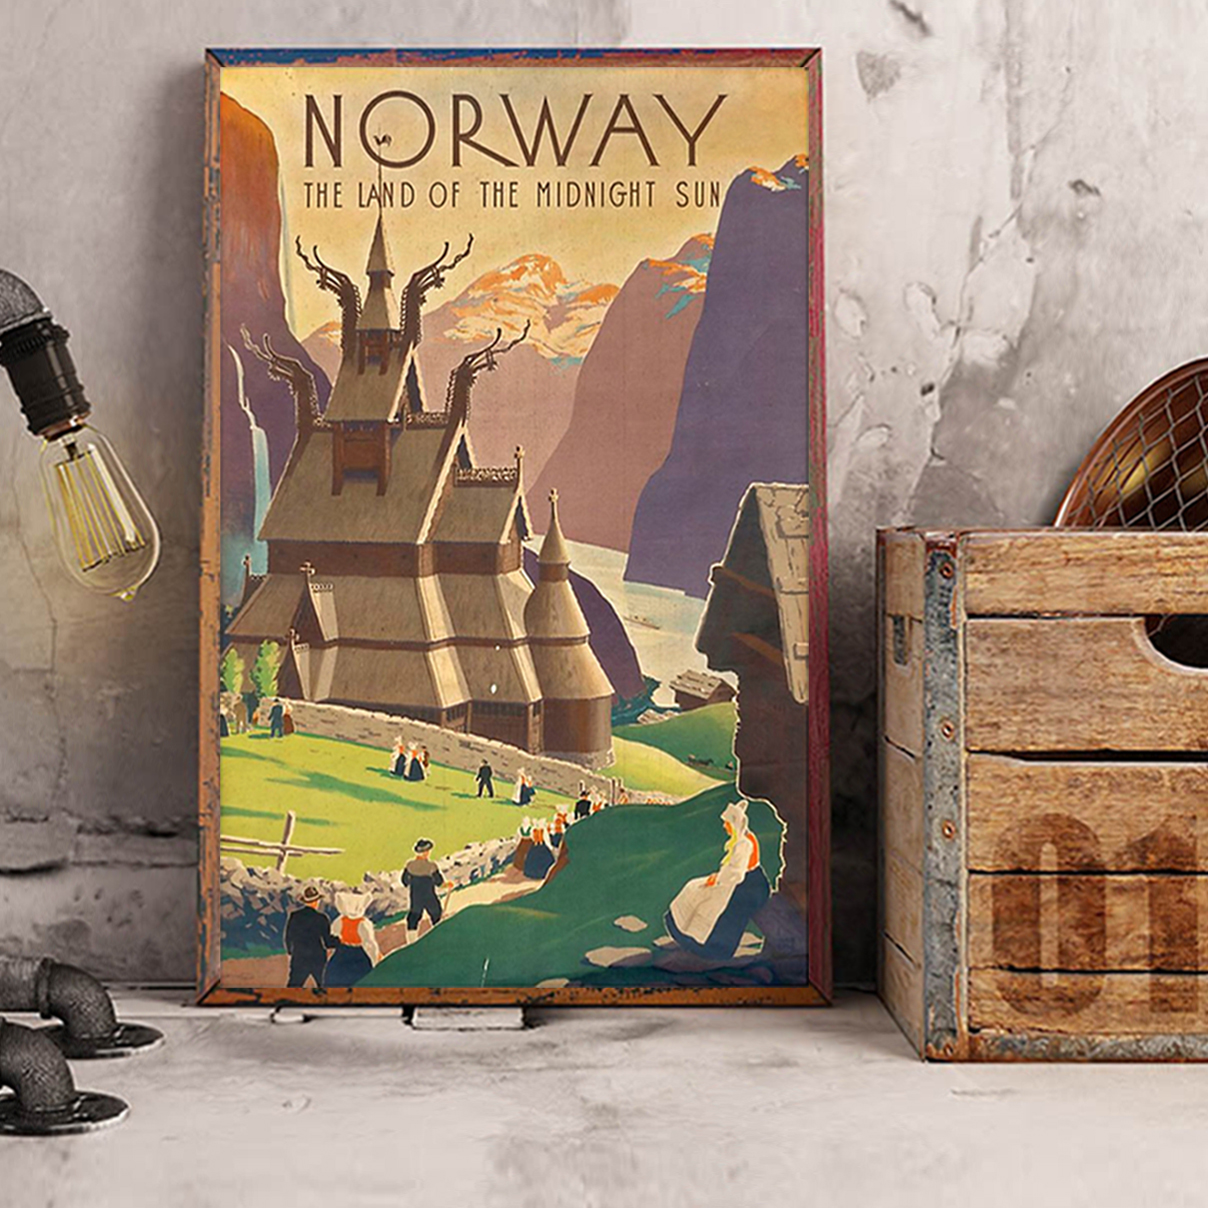 Norway the land of the midnight sun poster A2